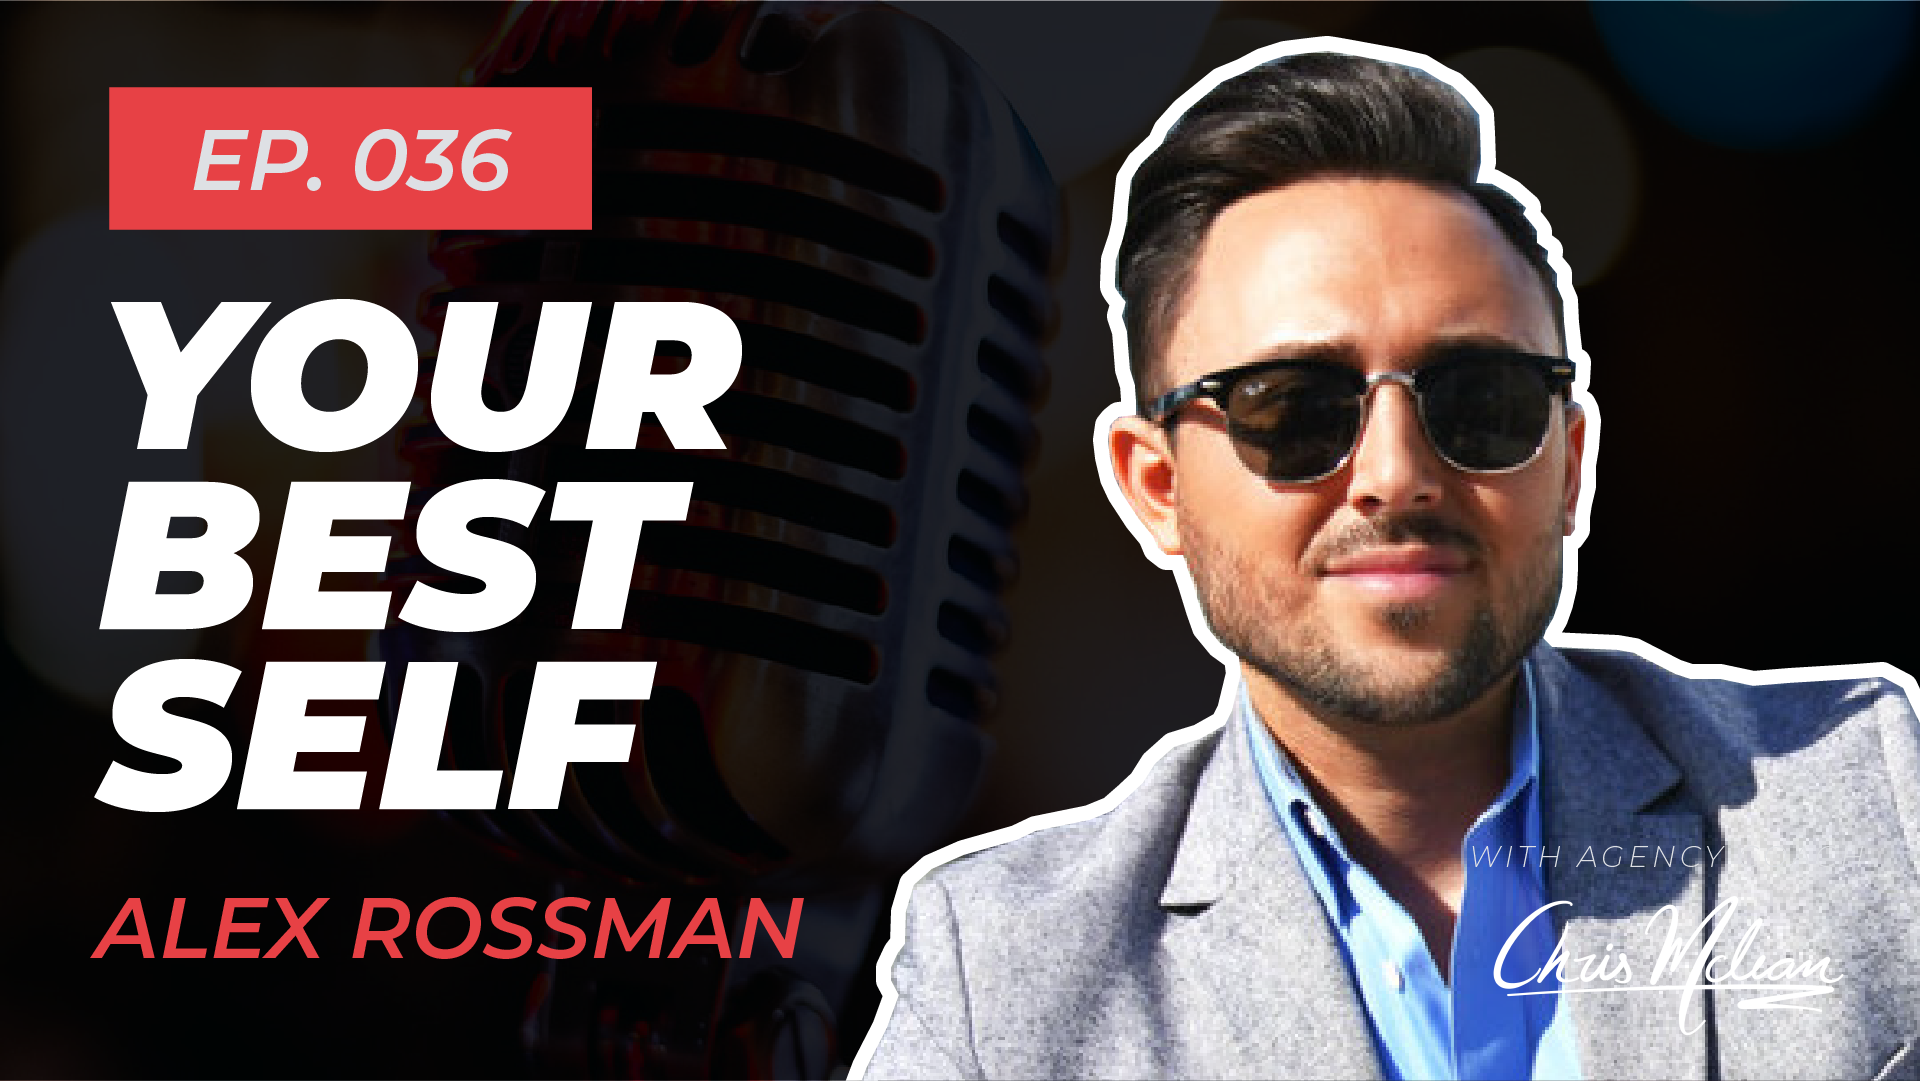 EP036 | Your Best Self with Alex Rossman